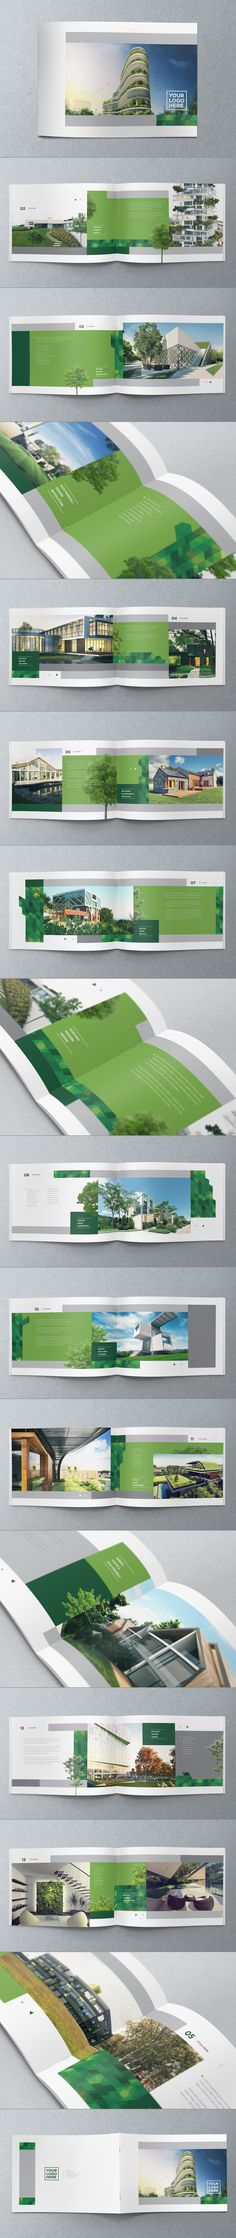 Brochure Design by Abra Design on Behance